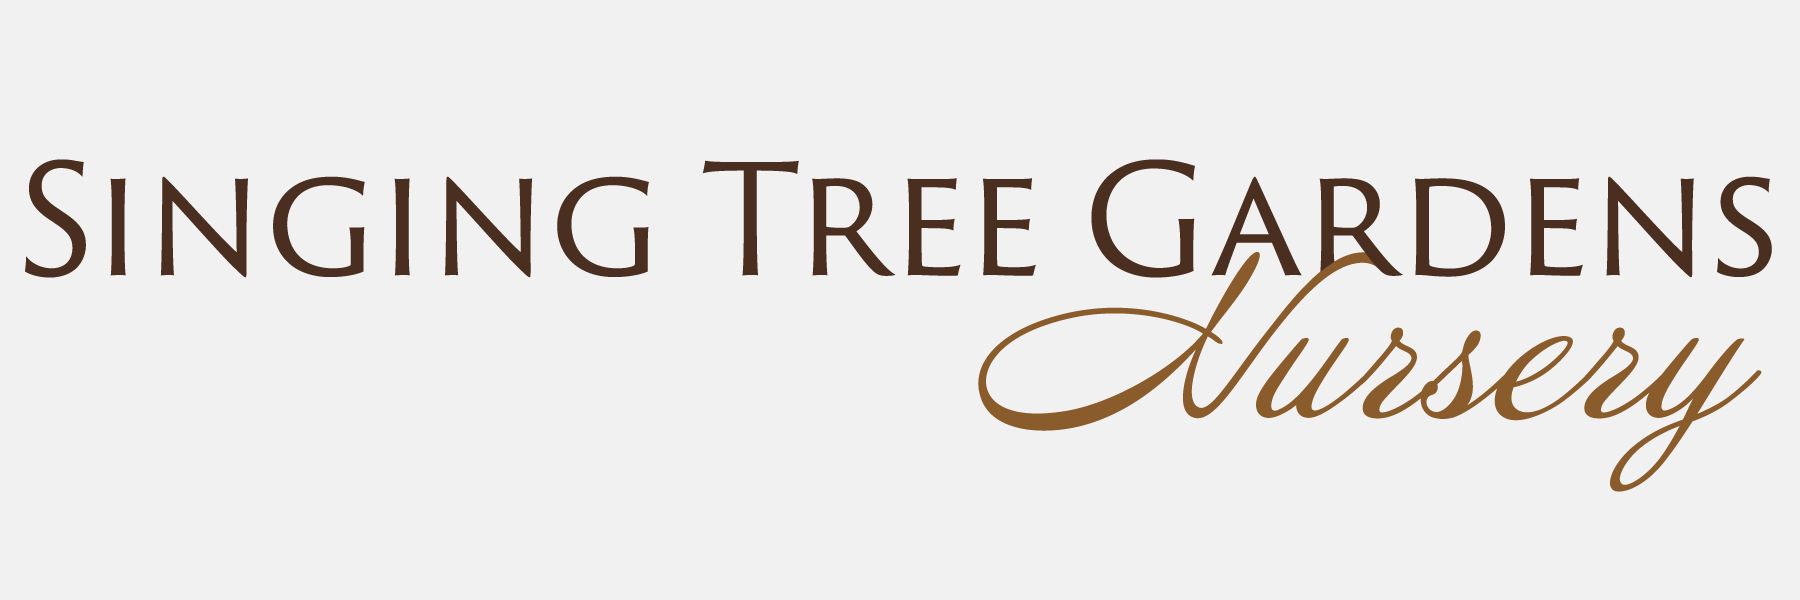 Screenshot of Singing Tree Garden's wordmark